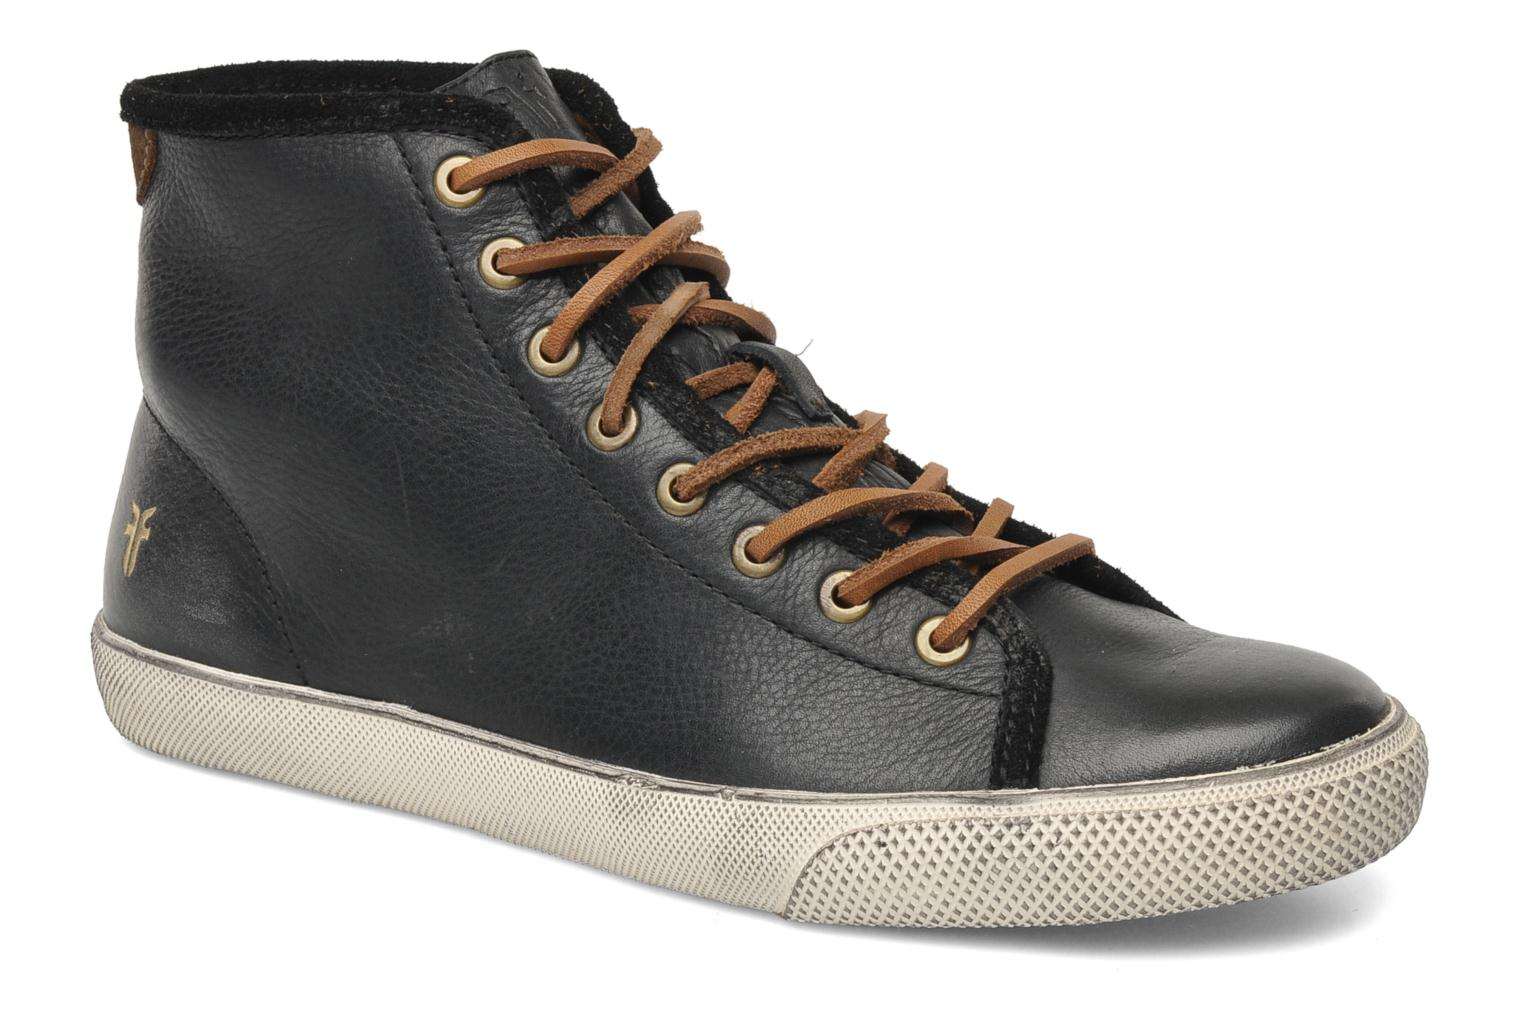 Sneakers Chambers high by Frye